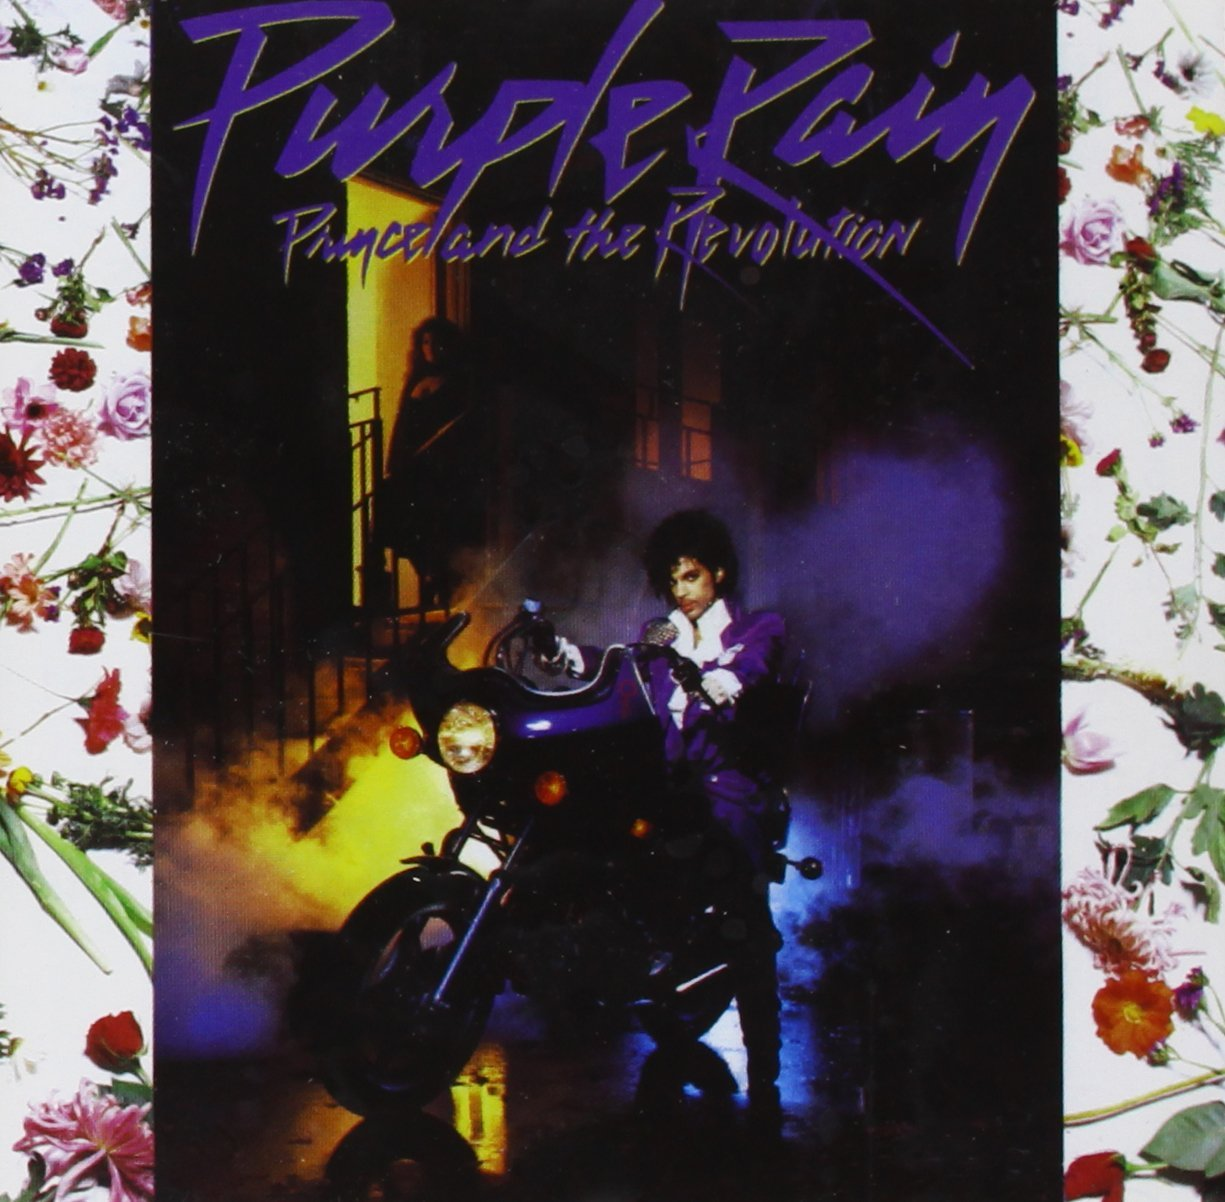 Purple Rain by Prince